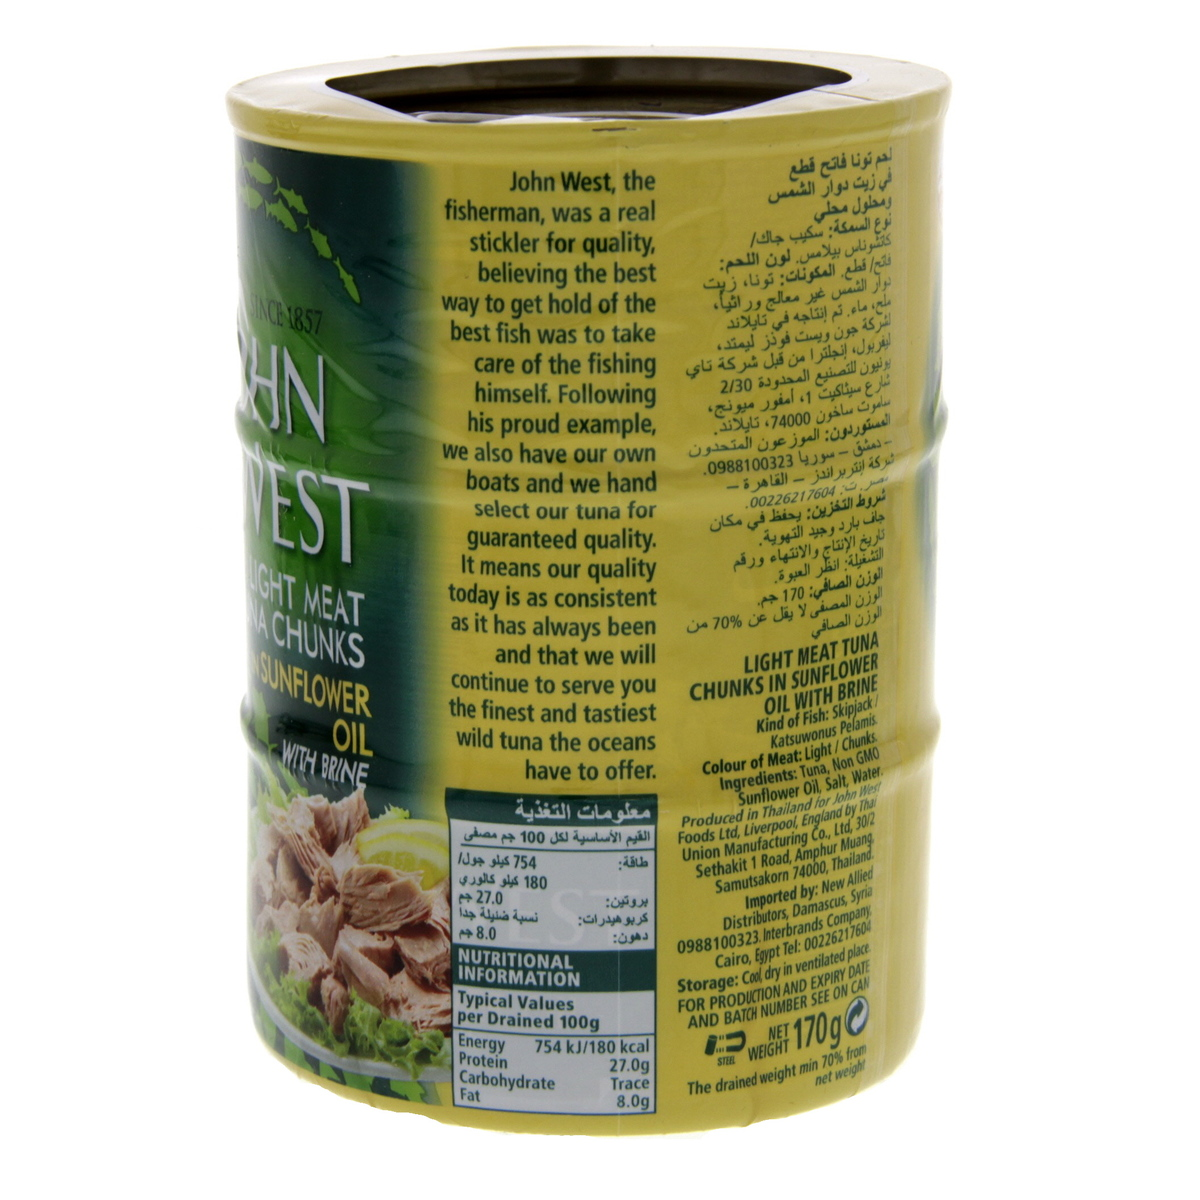 John West Light Meat Tuna Chunks In Sunflower Oil With Brine 3 x 170g